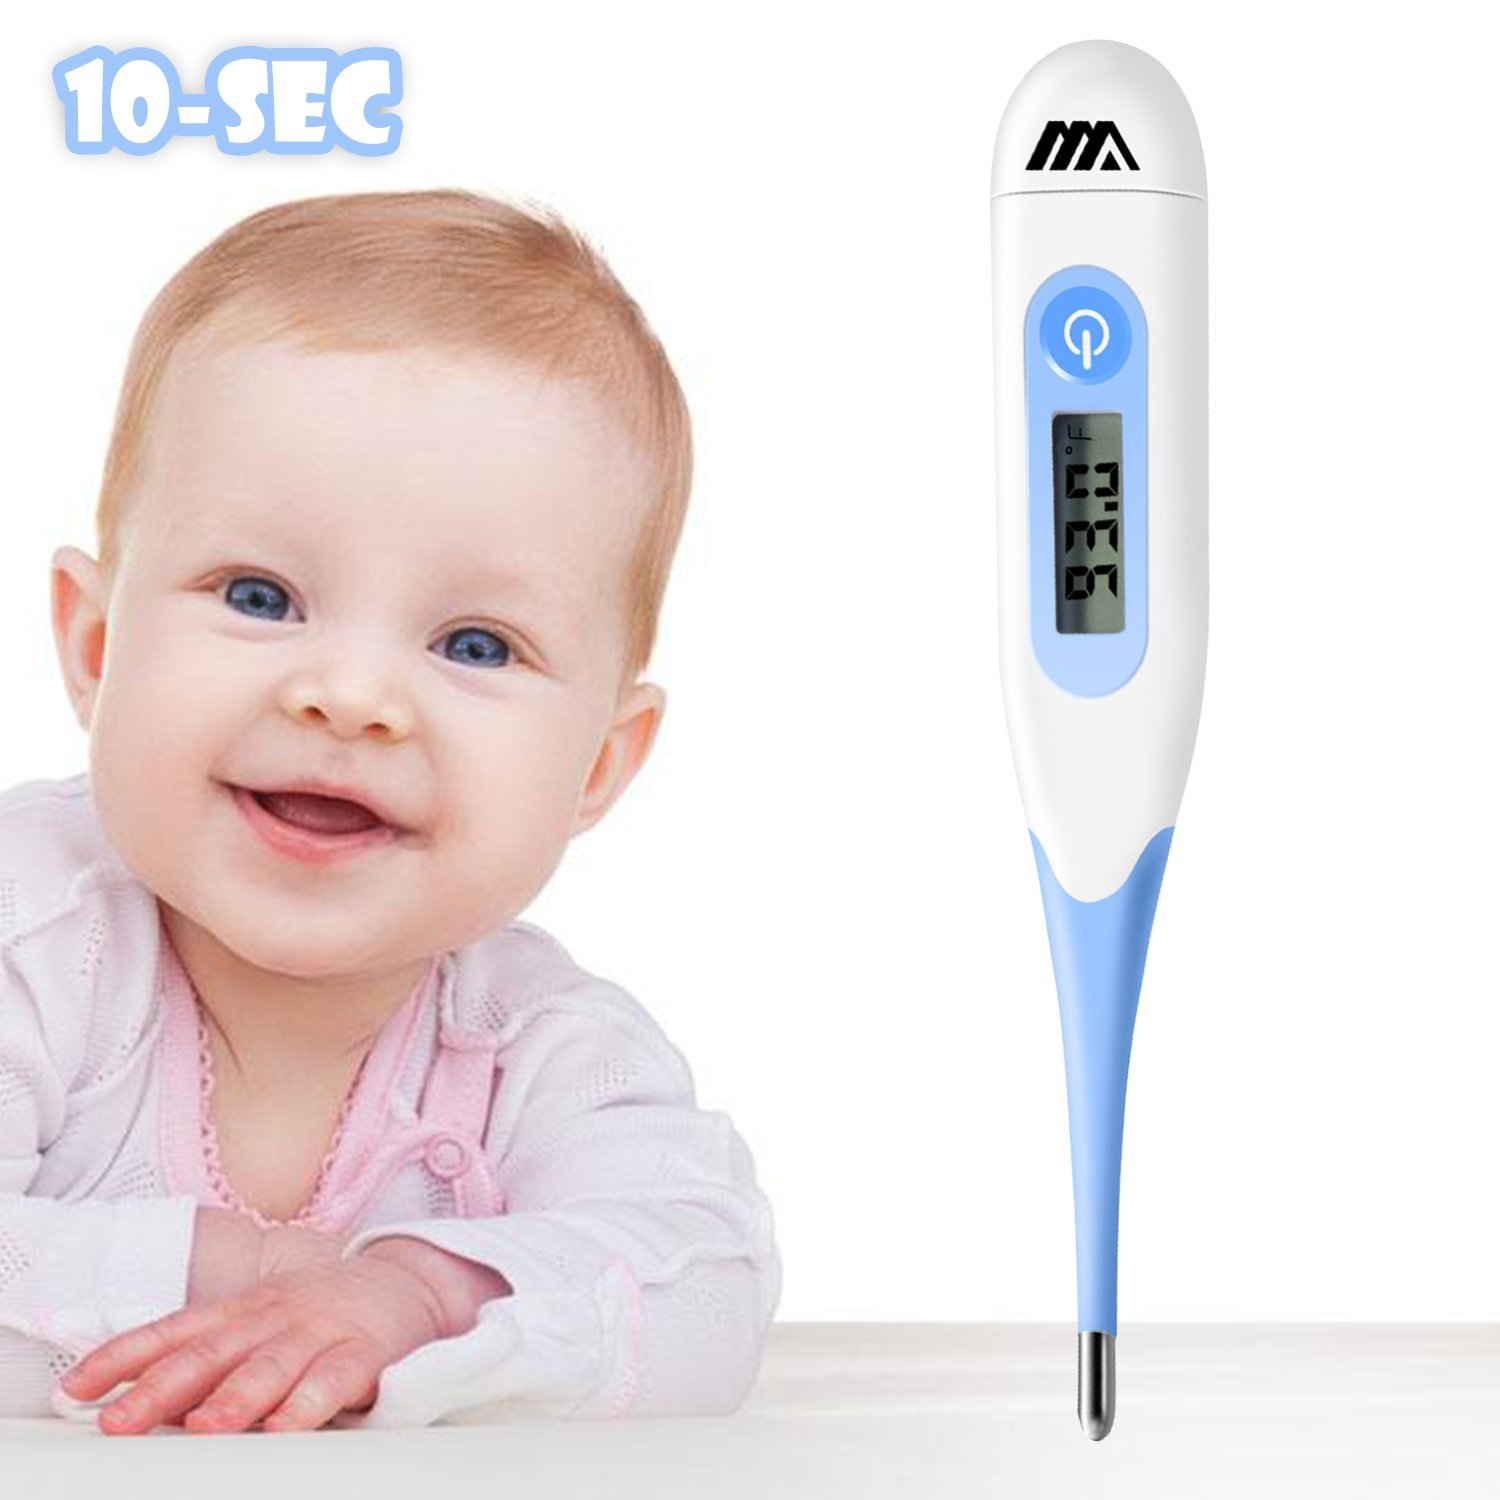 Adoric Life Digital Basal Thermometer with 10 Sec Fast Reading - Oral Mouth, Rectal, Underarm Body Temperature Thermometer for Babies, Kids and Adults with Fever Indicator FDA and CE Approved